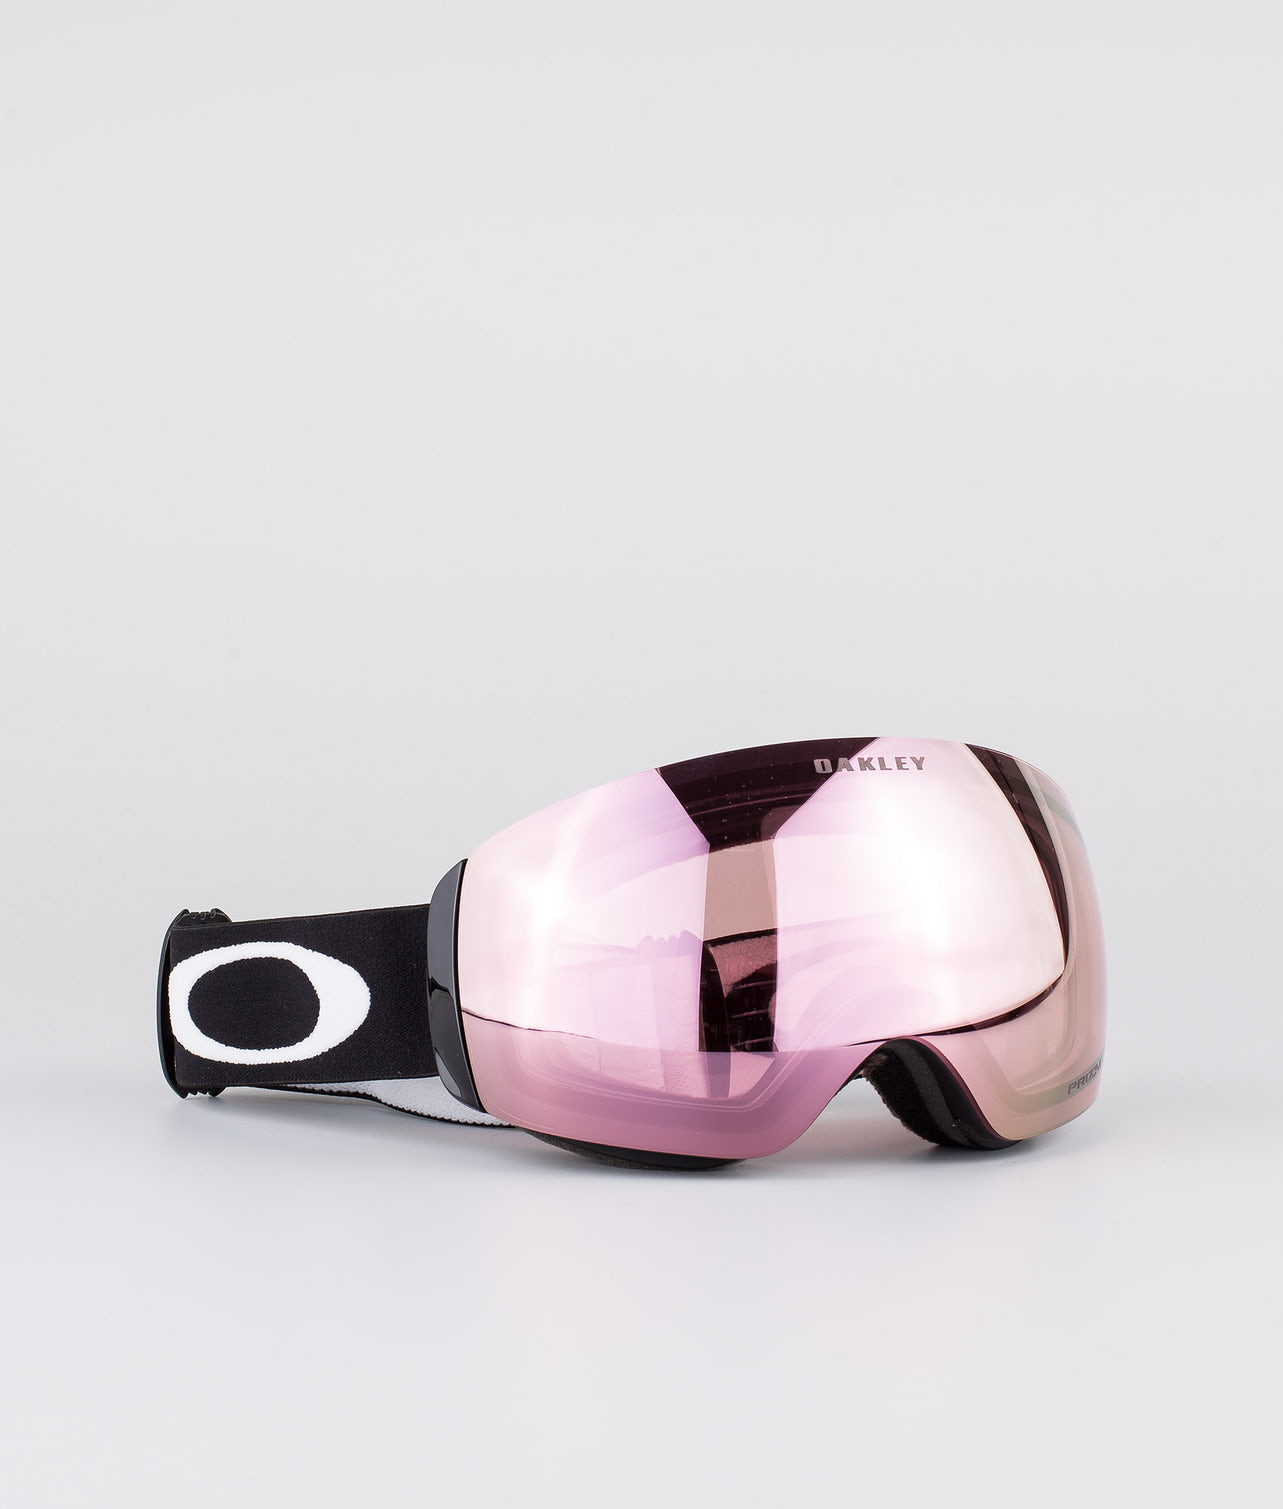 Buy Flight Deck XM Ski Goggle from Oakley at Ridestore.com - Always free shipping, free returns and 30 days money back guarantee